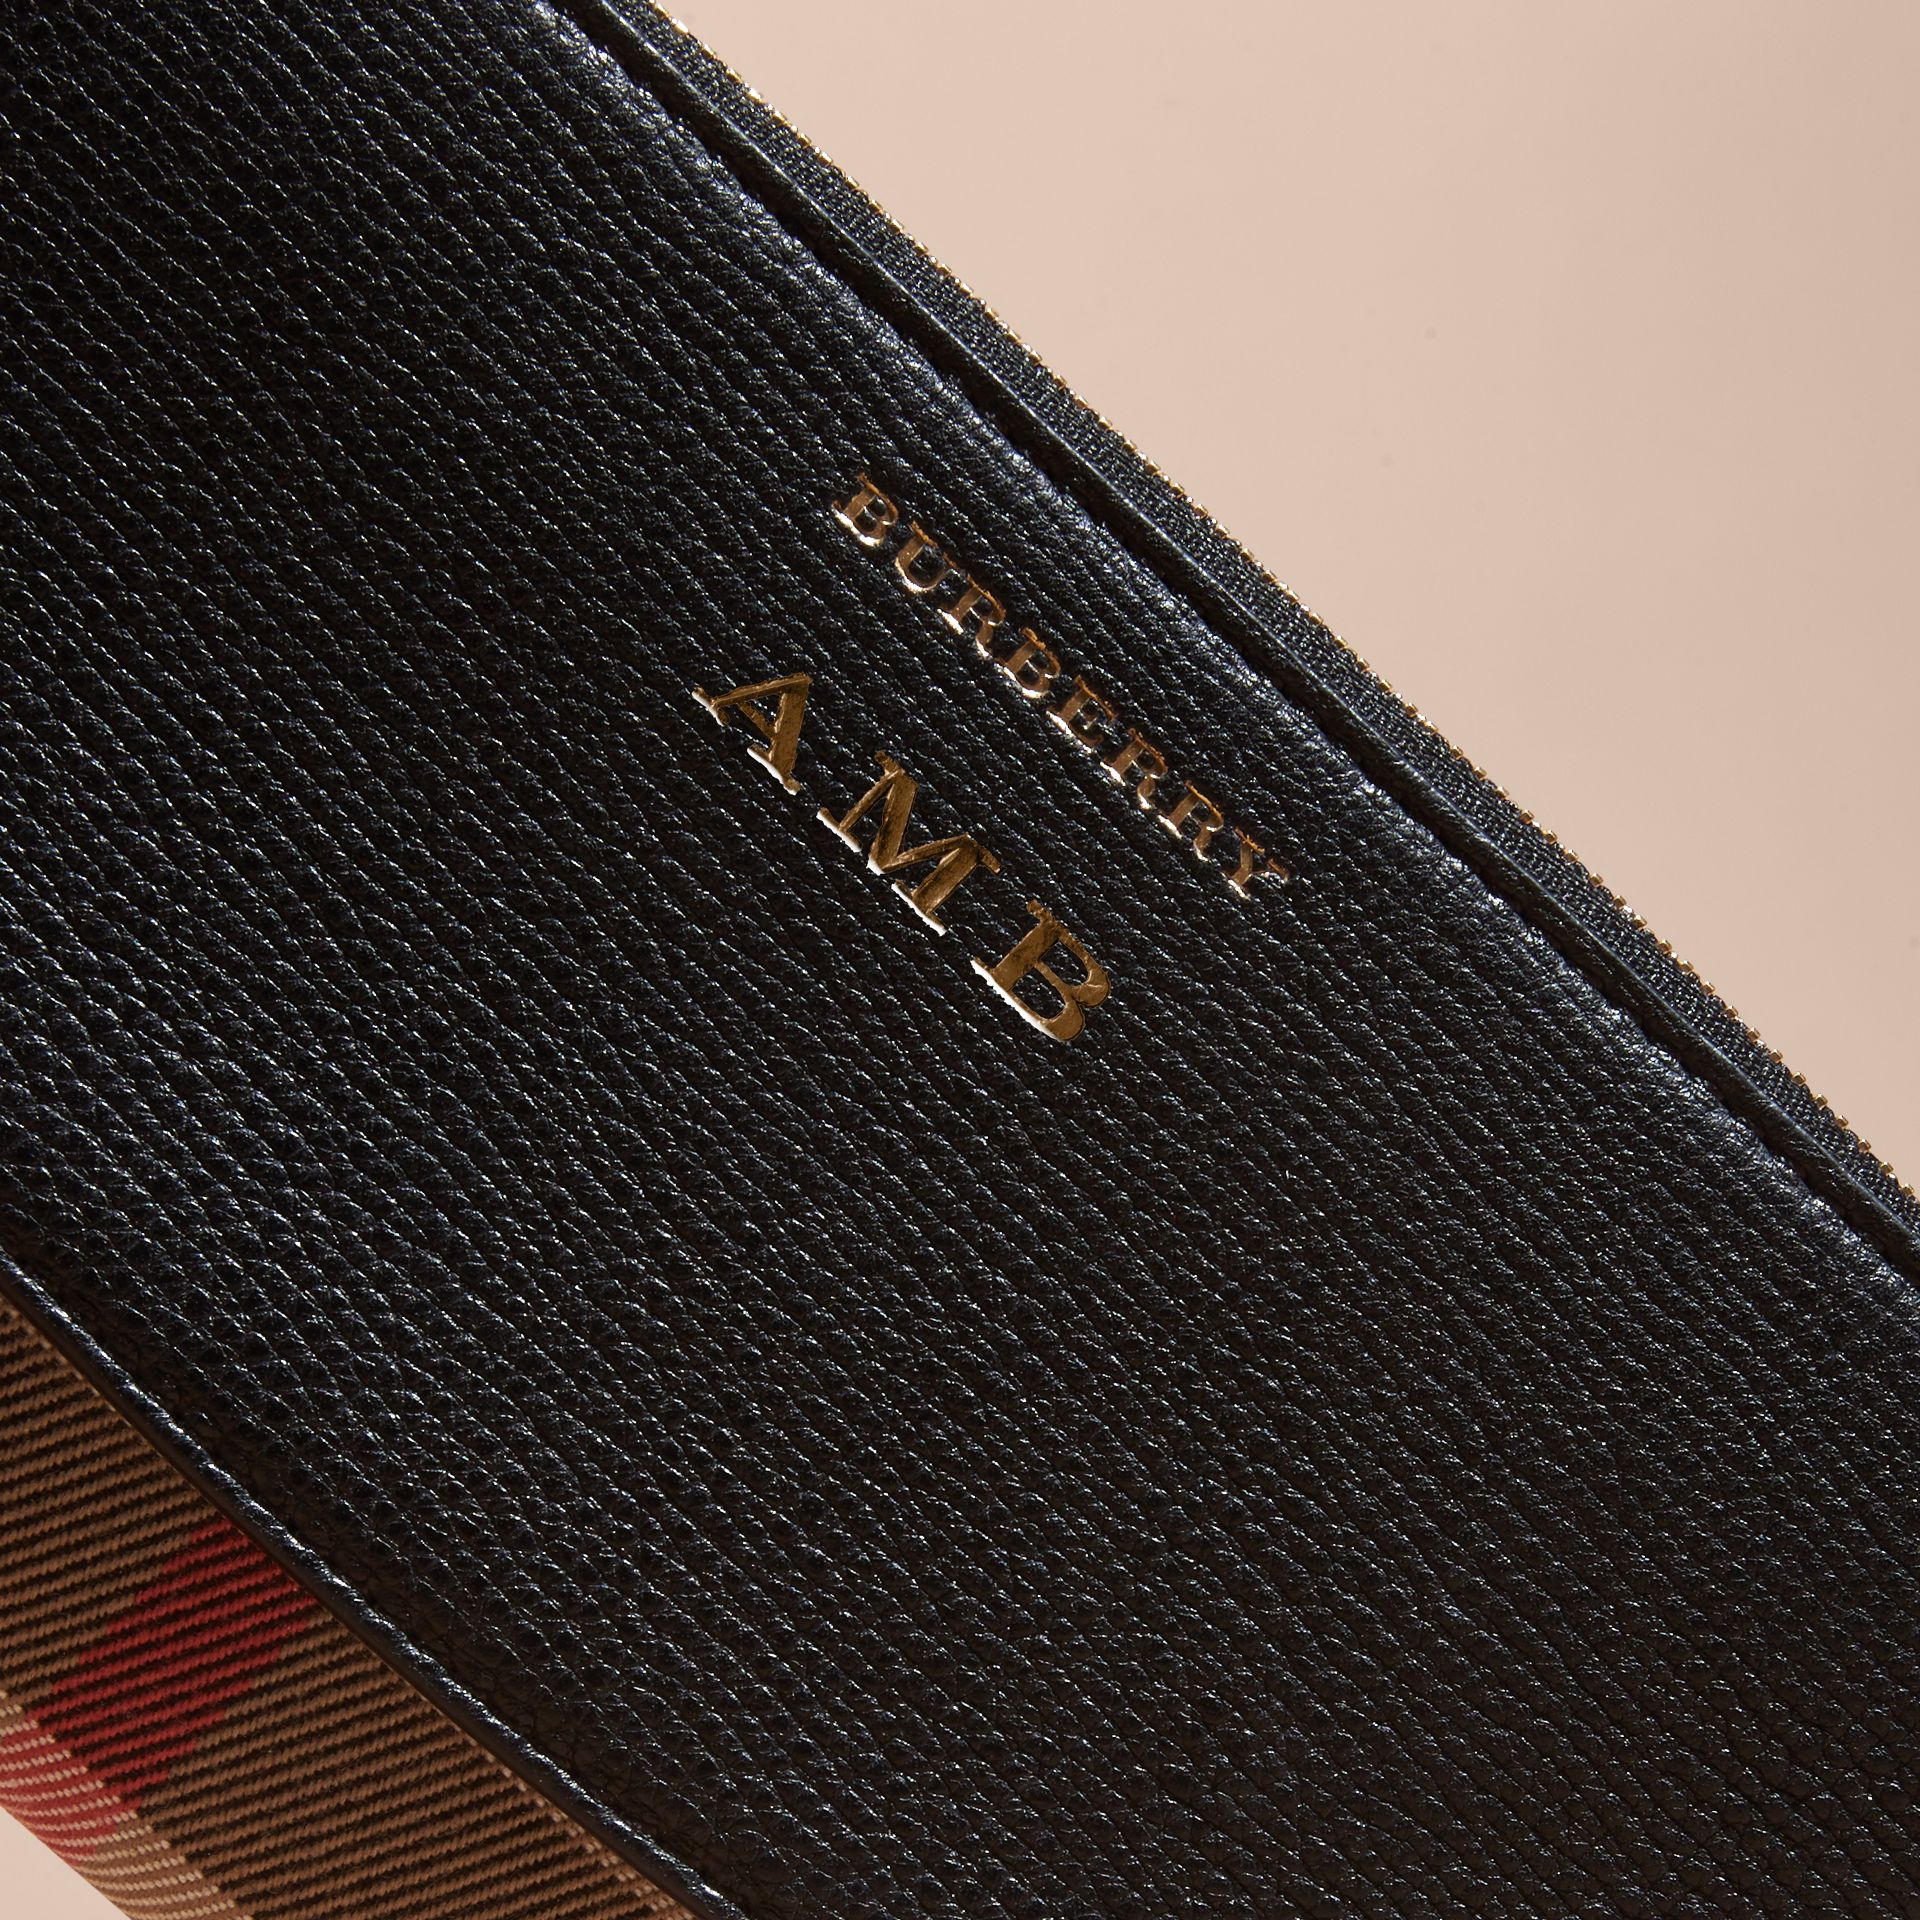 House Check and Leather Ziparound Wallet in Black - Women | Burberry - gallery image 7